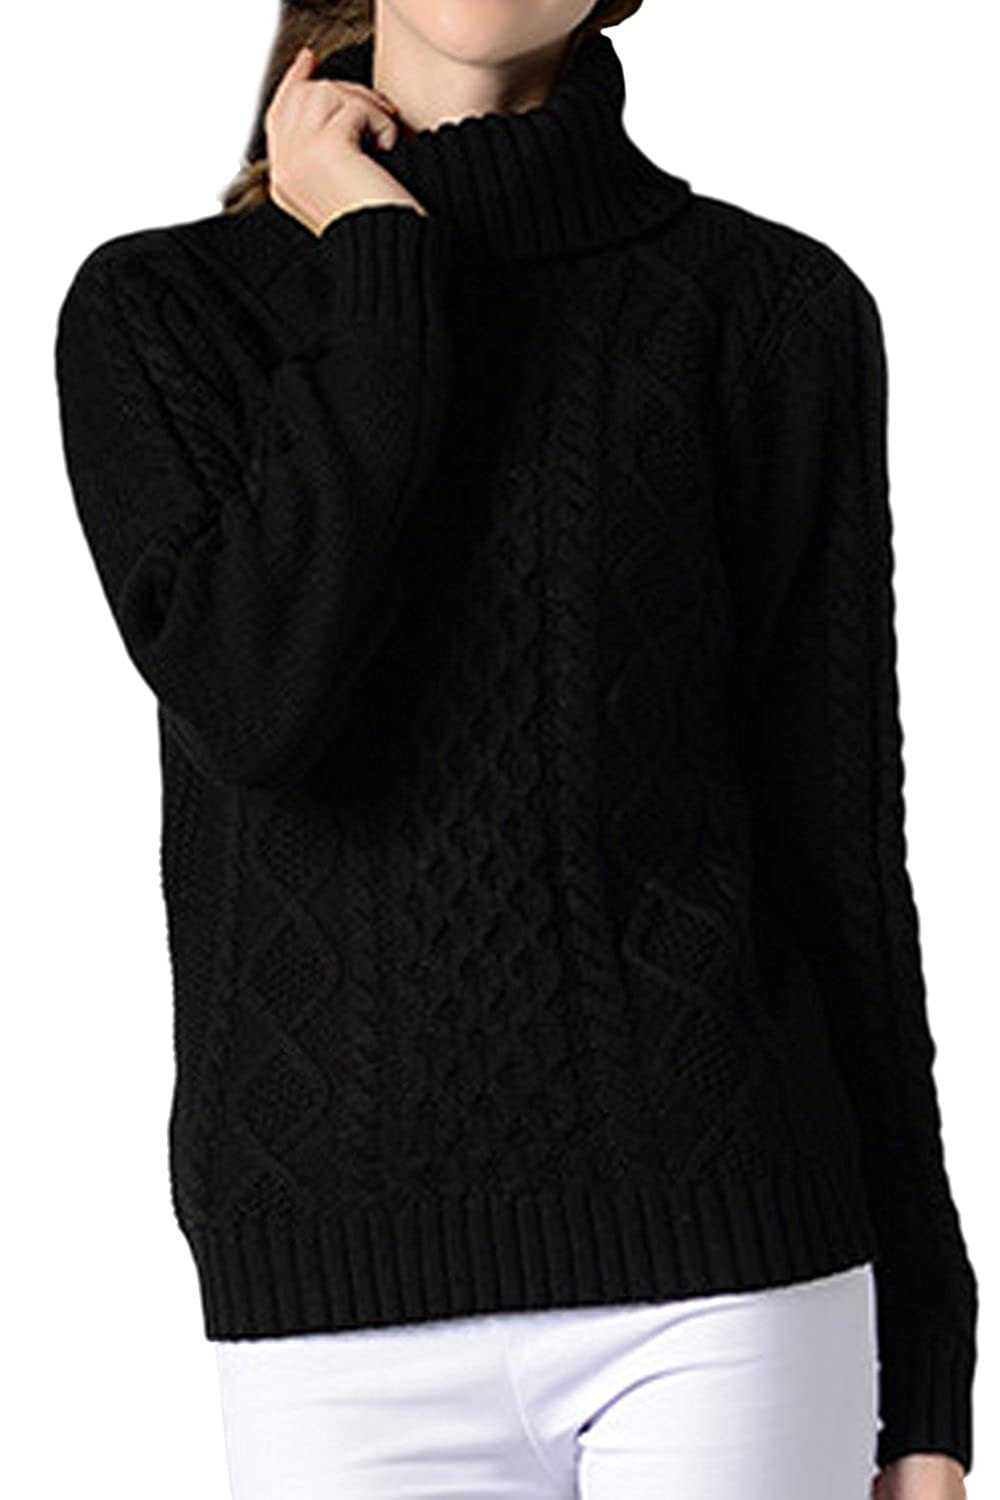 Yacun Women Pullover Sweaters Long Sleeve Turtleneck Cable Knit Jumper